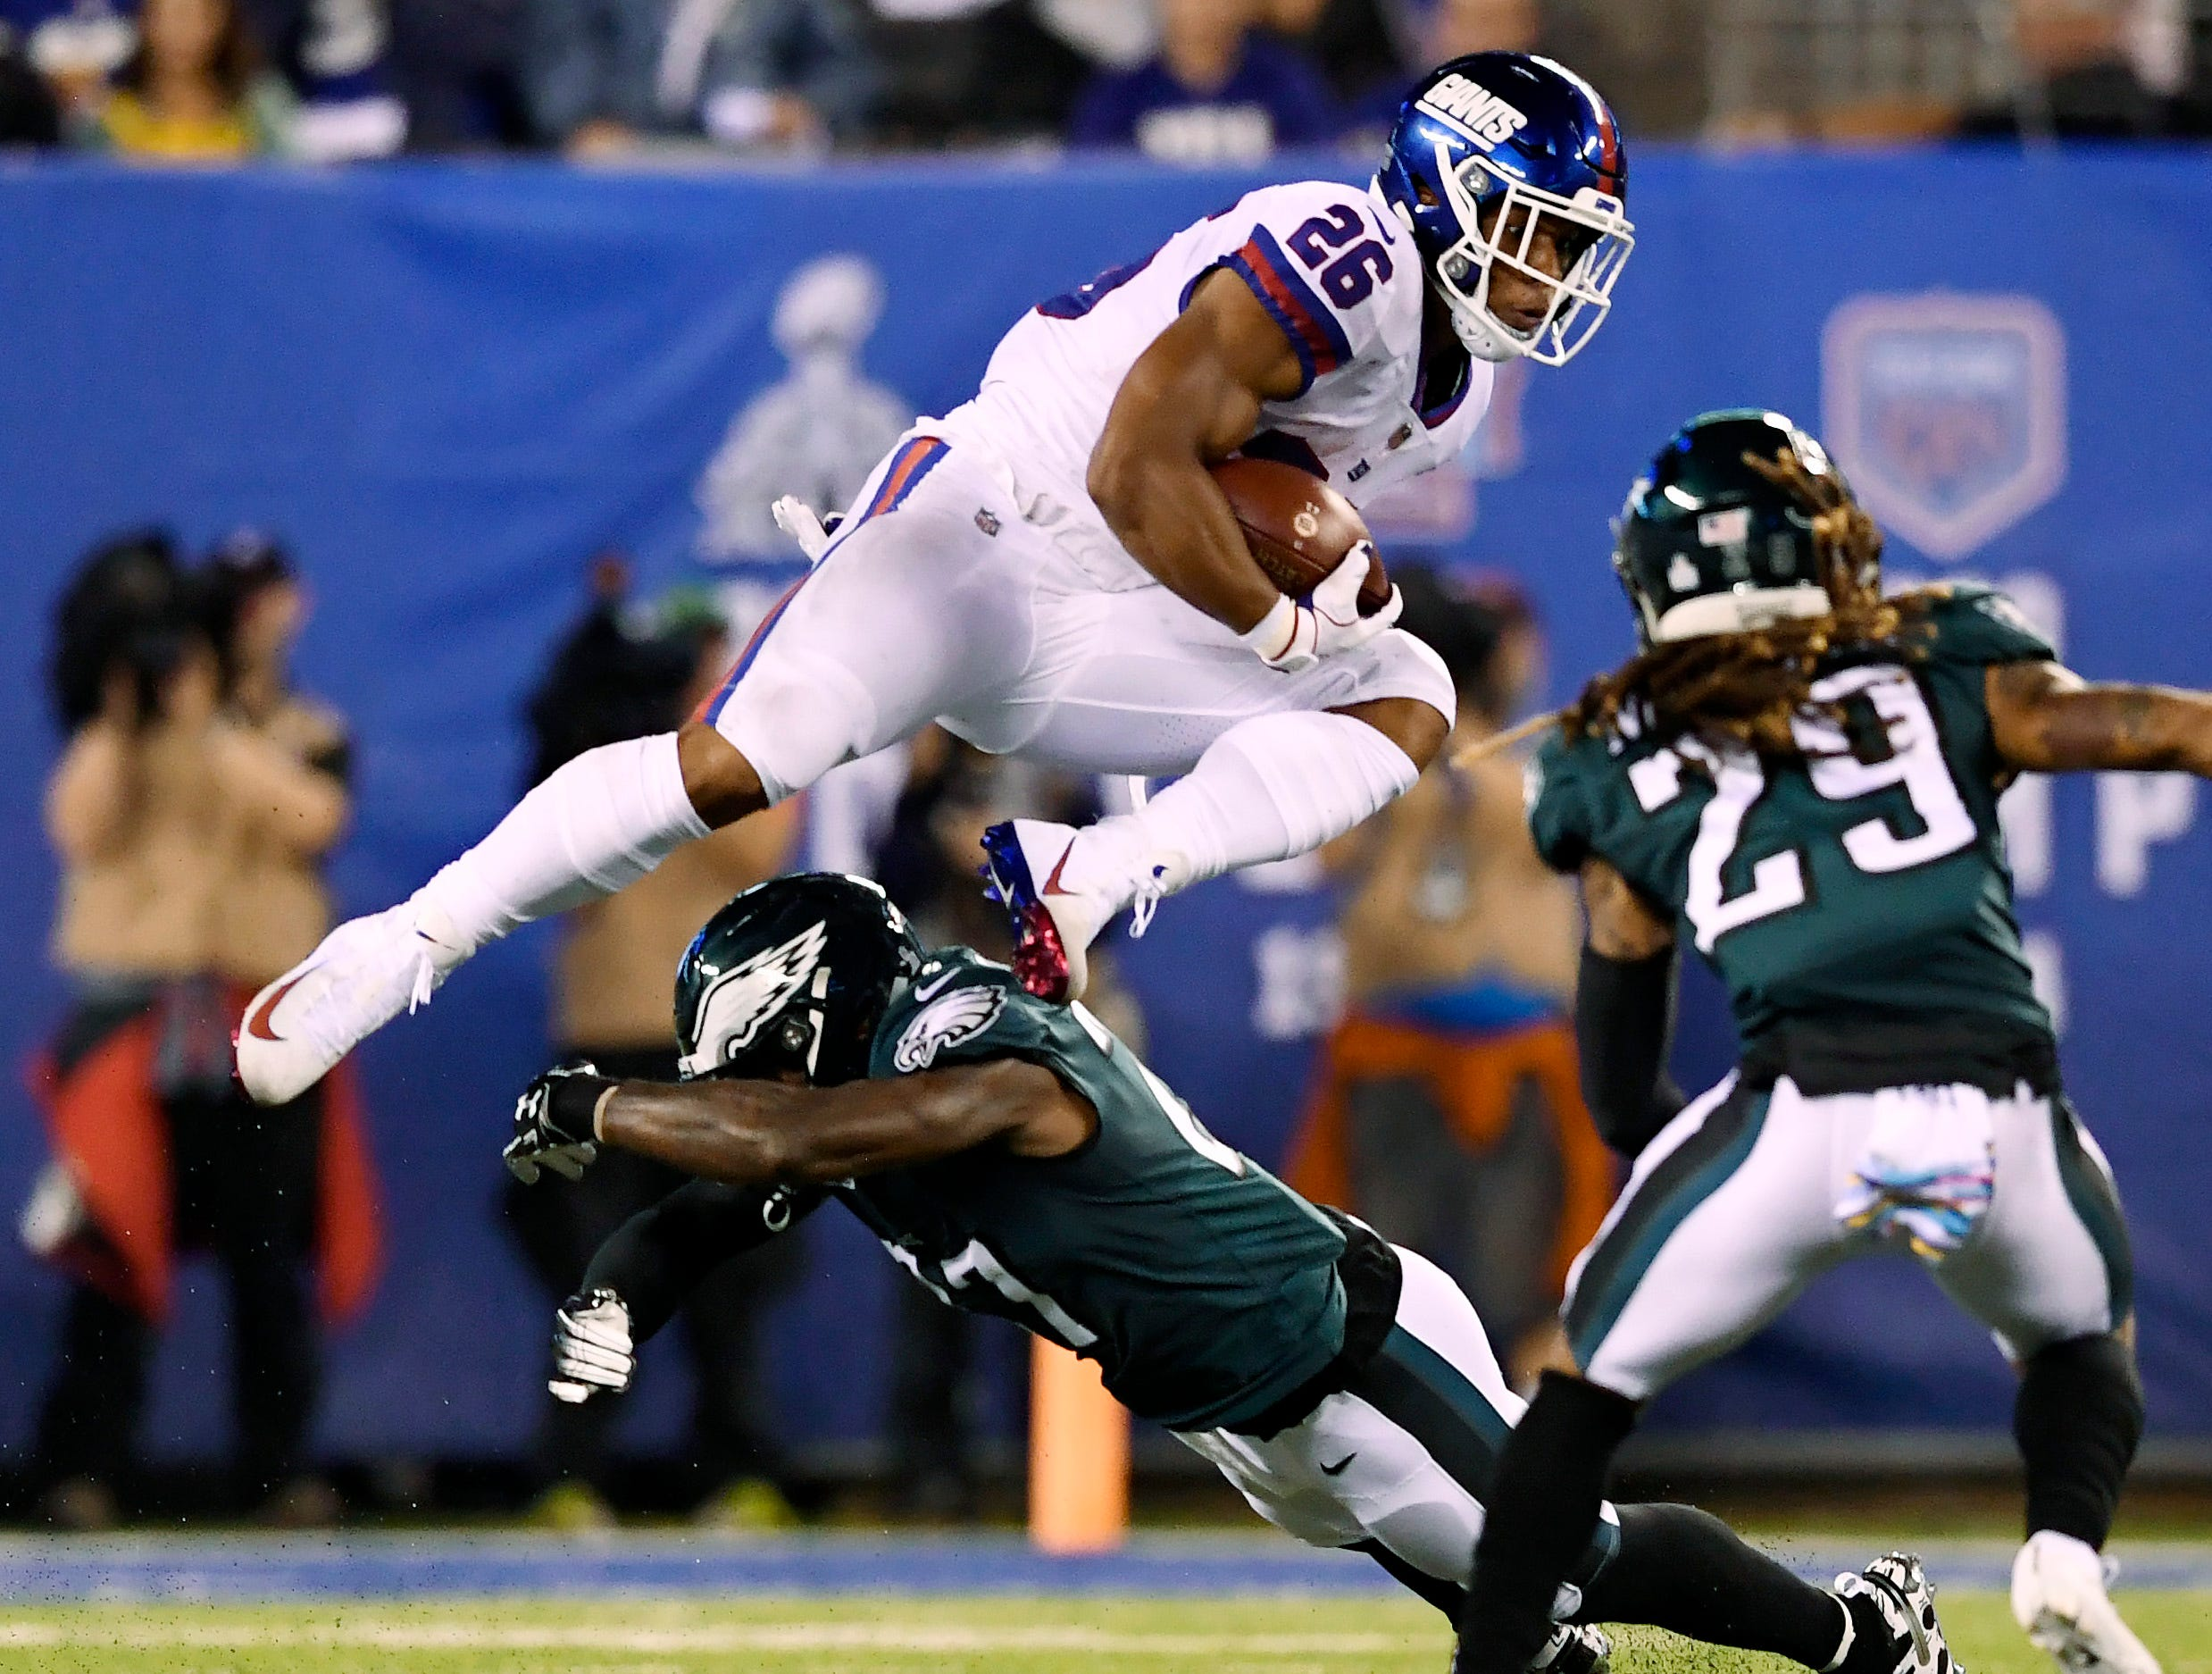 New York Giants running back Saquon Barkley (26) jumps over an Eagles defender in the first half. The New York Giants face the Philadelphia Eagles on Thursday, Oct. 11, 2018, in East Rutherford.